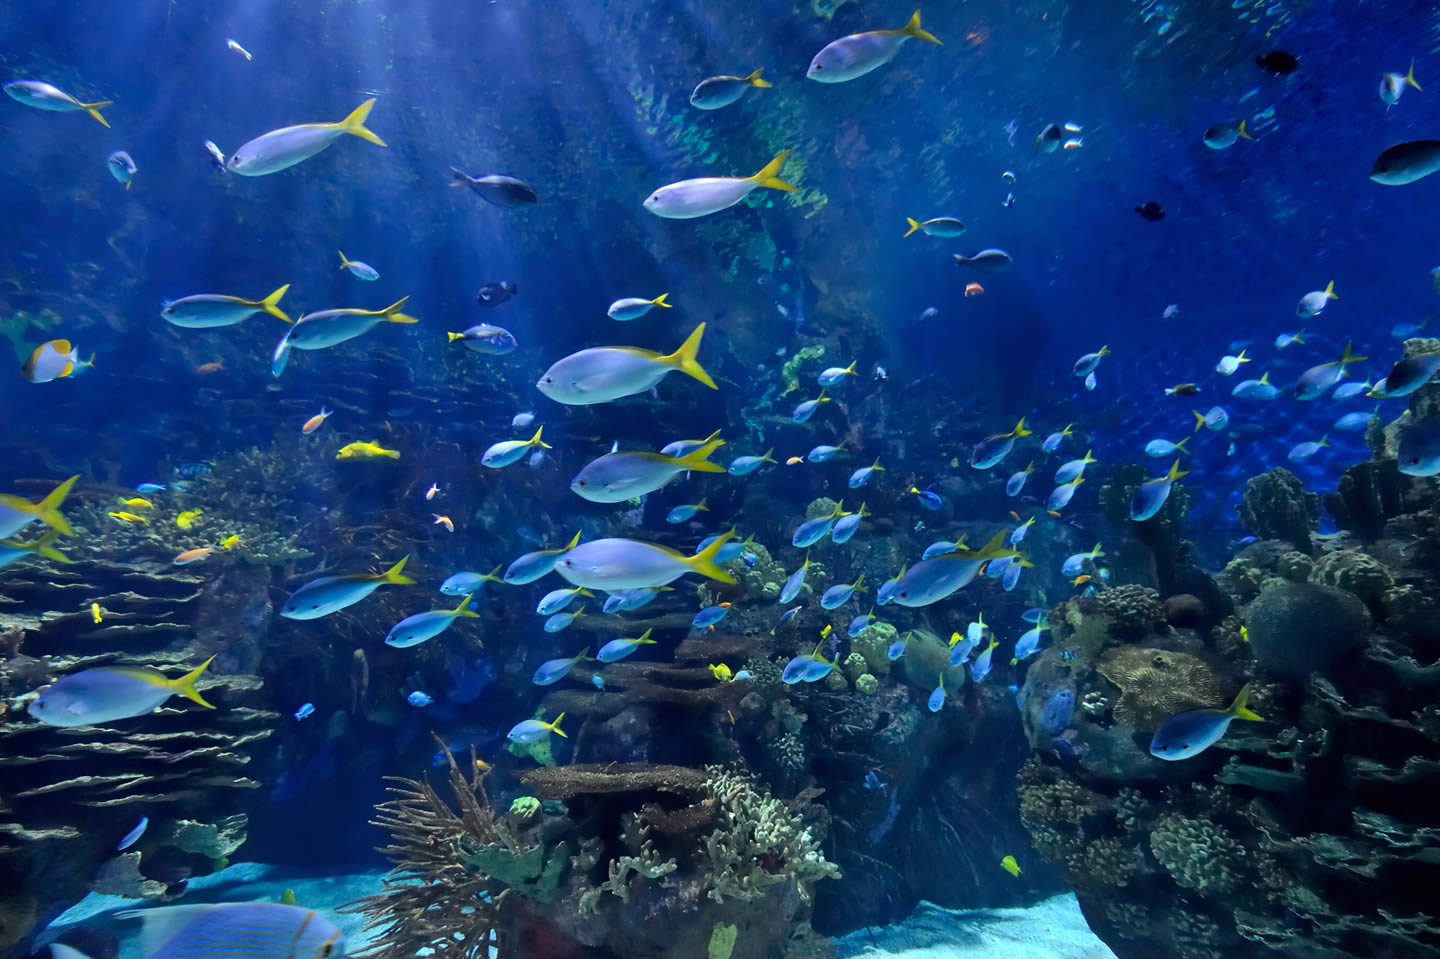 Aquarium Fish in a Flock 872.38 Kb